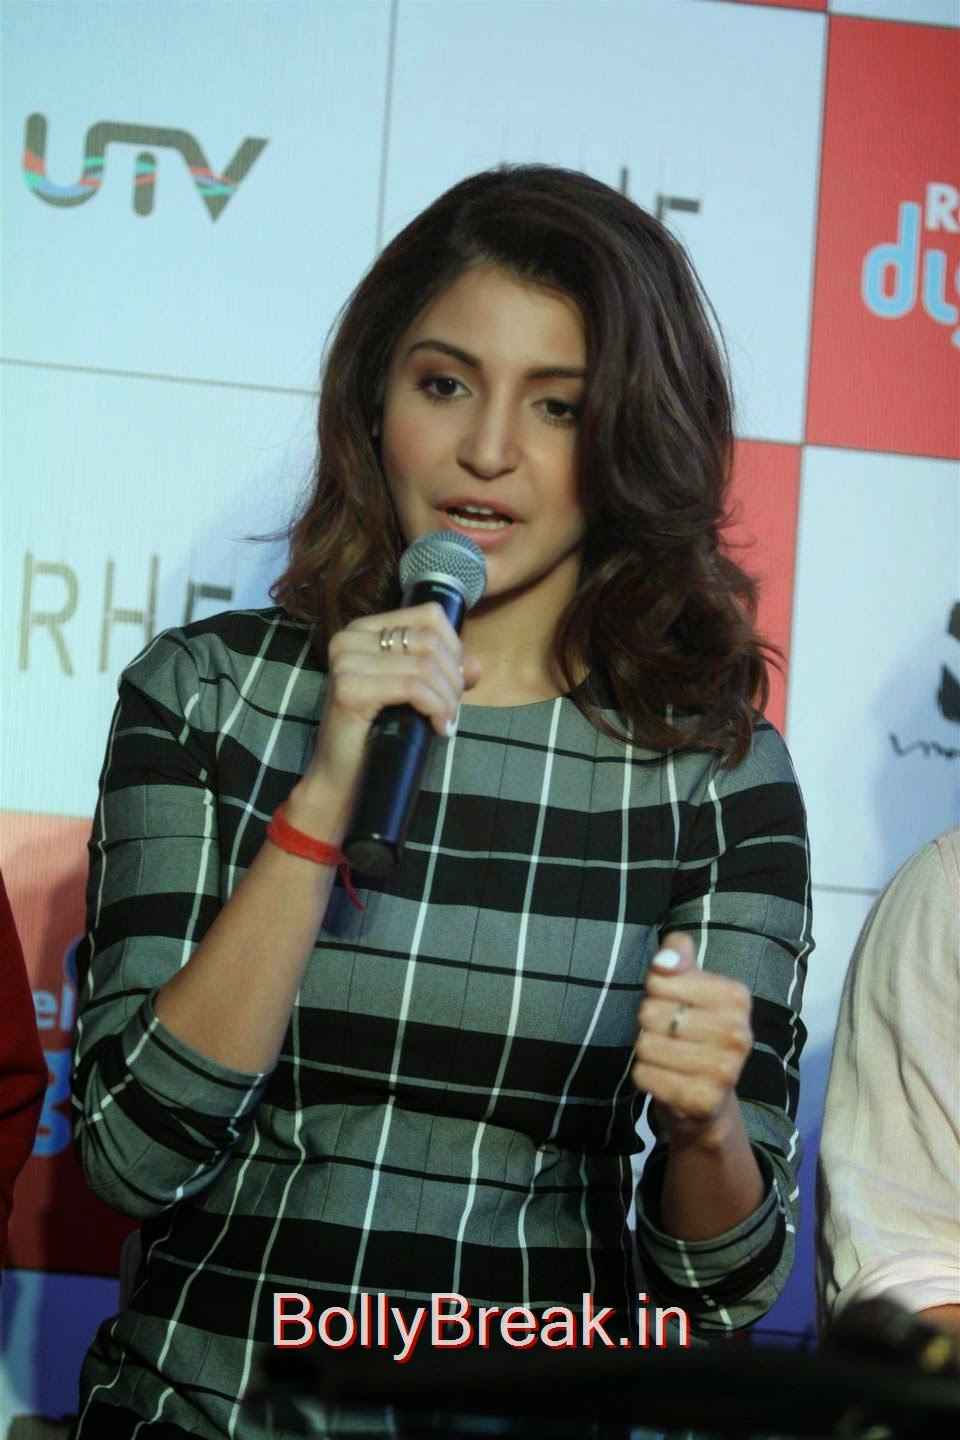 Anushka Sharma Pictures, Anushka Sharma Hot Pics In check dress from PK Mobile Game Launch